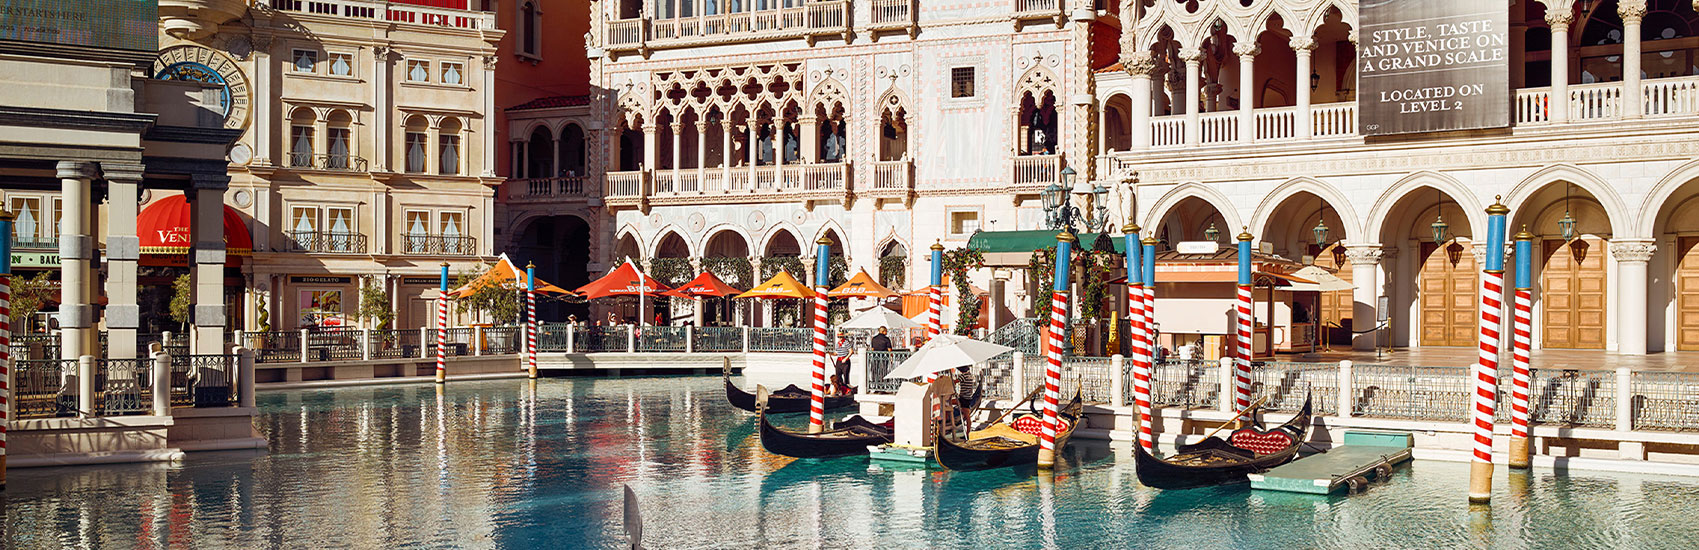 Short Stay Getaway to Venetian Resorts in Las Vegas 0